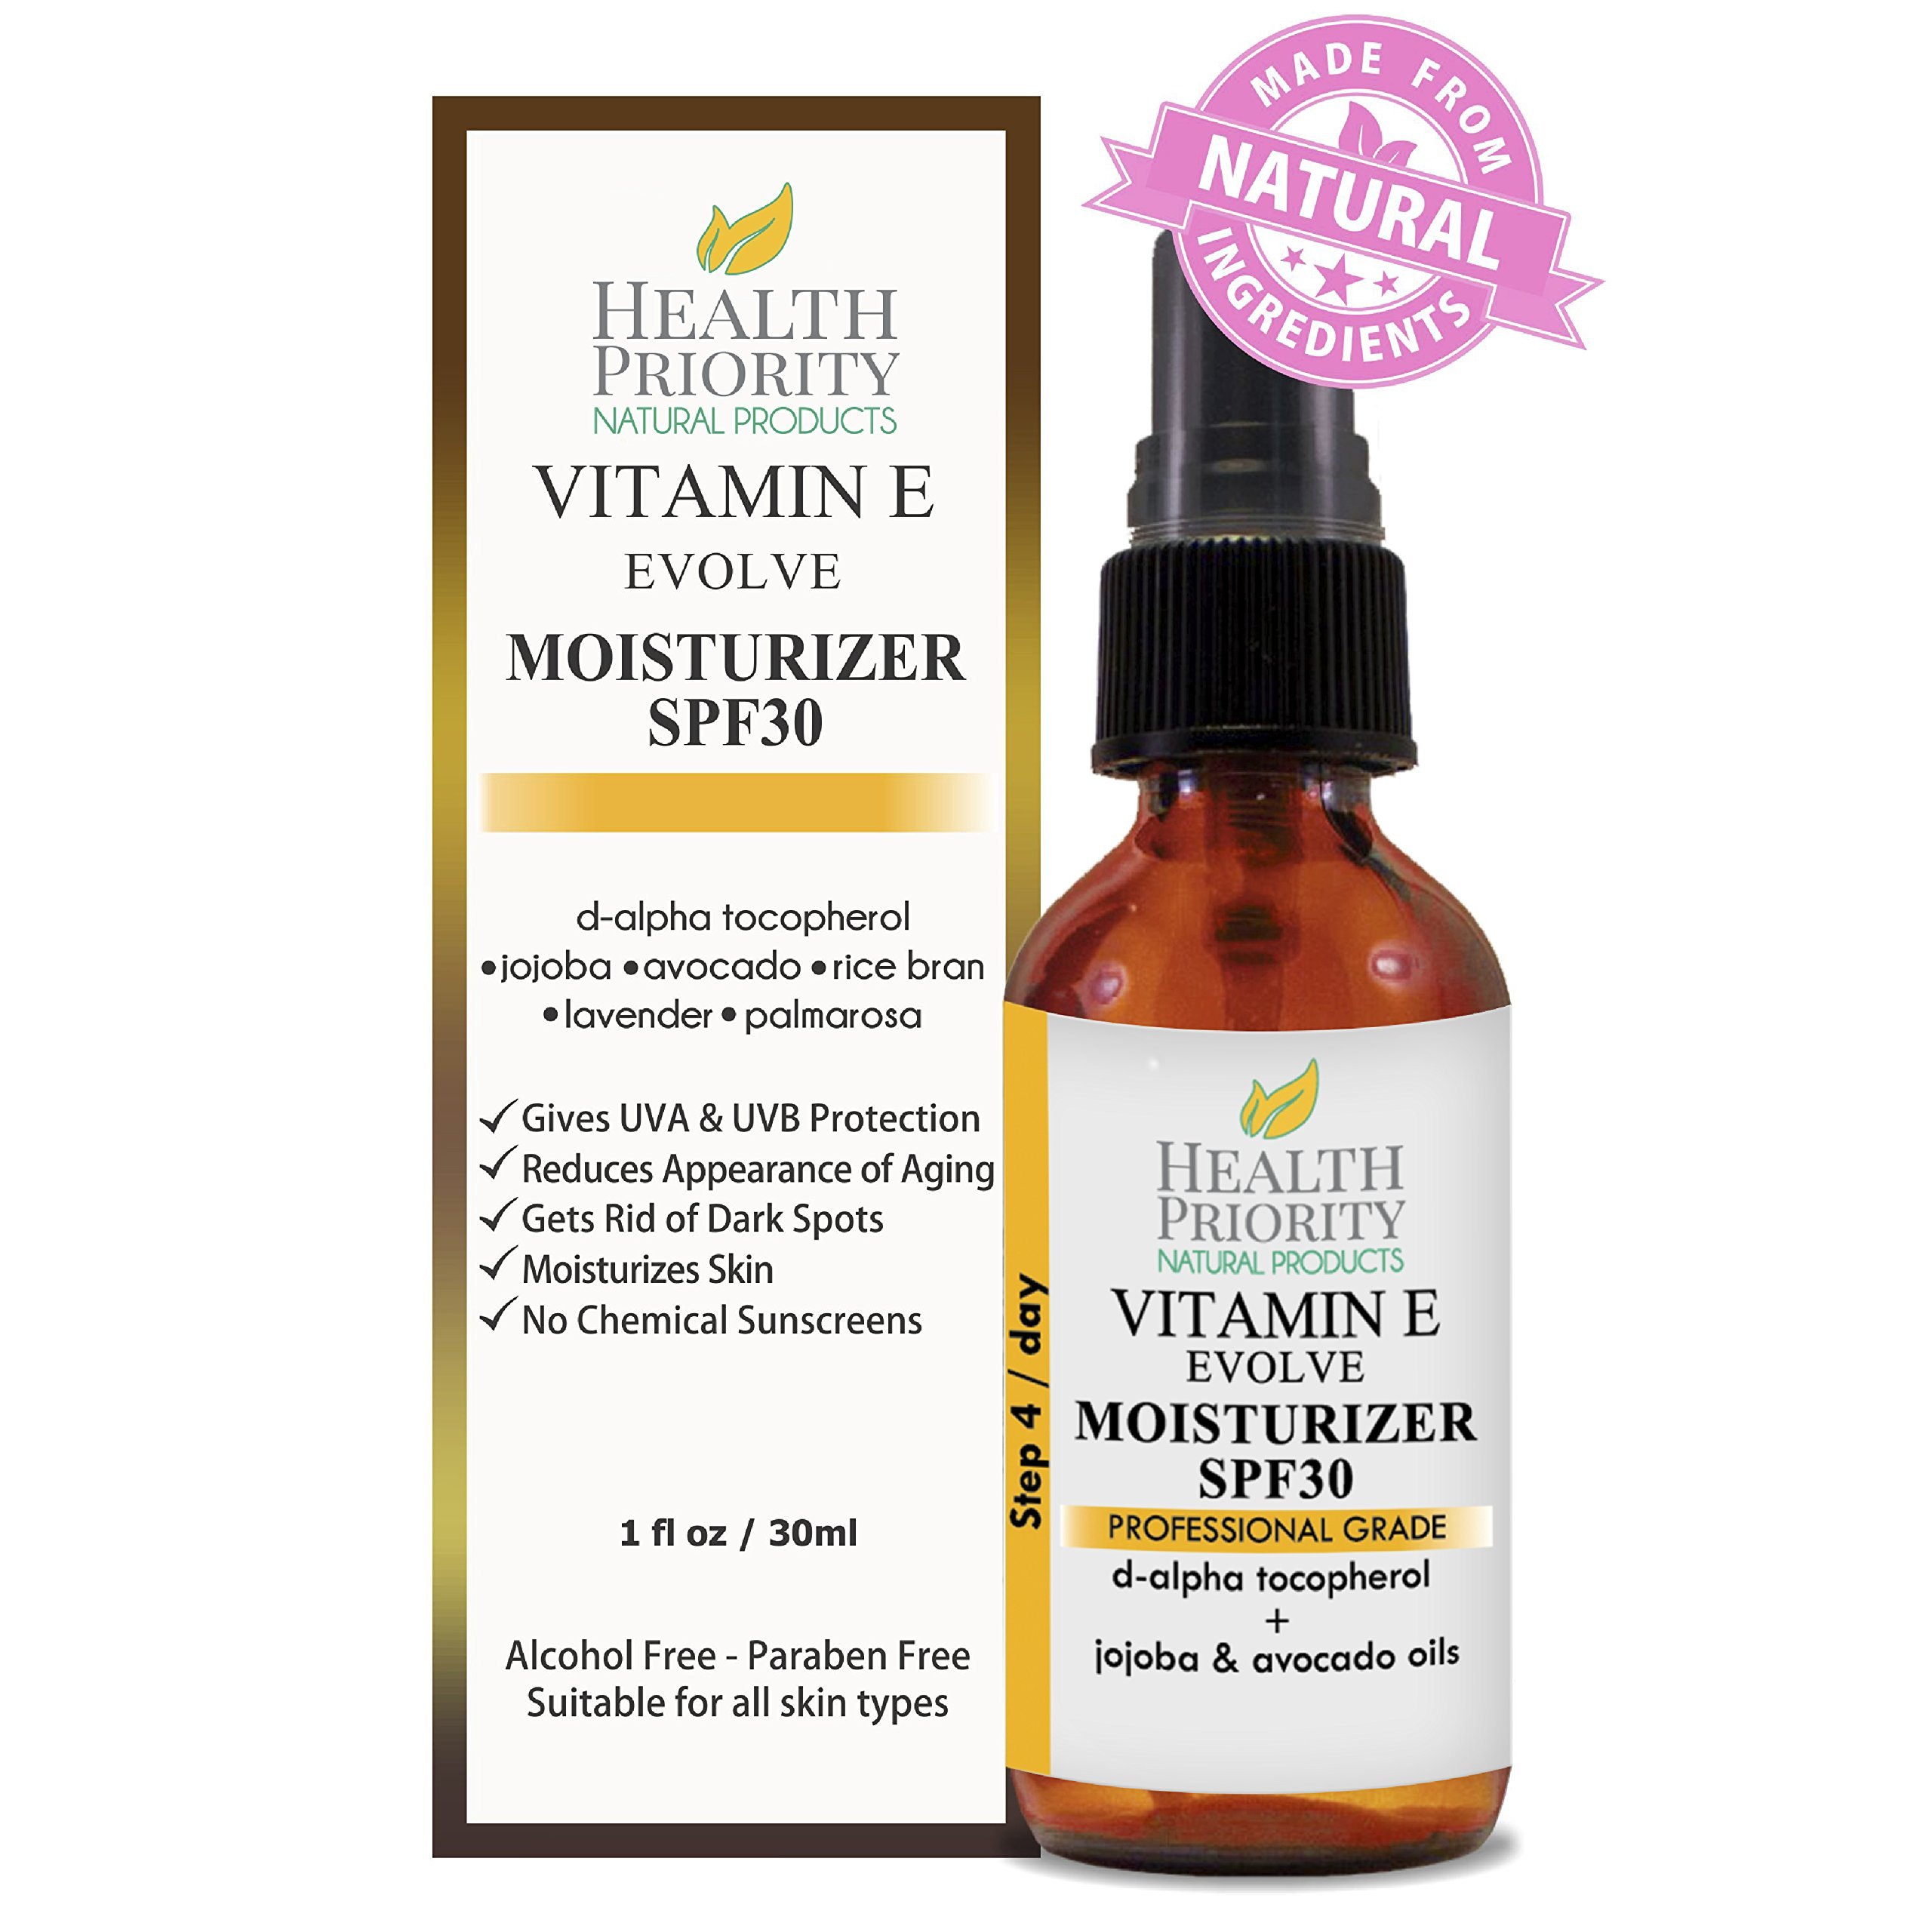 Natural Vitamin E Moisturizer + SPF 30. Daily non-greasy moisturizing sunscreen perfect for face and under makeup. Chemical & paraben free mineral sunblock lotion safe for baby & kids. Hydrating cream